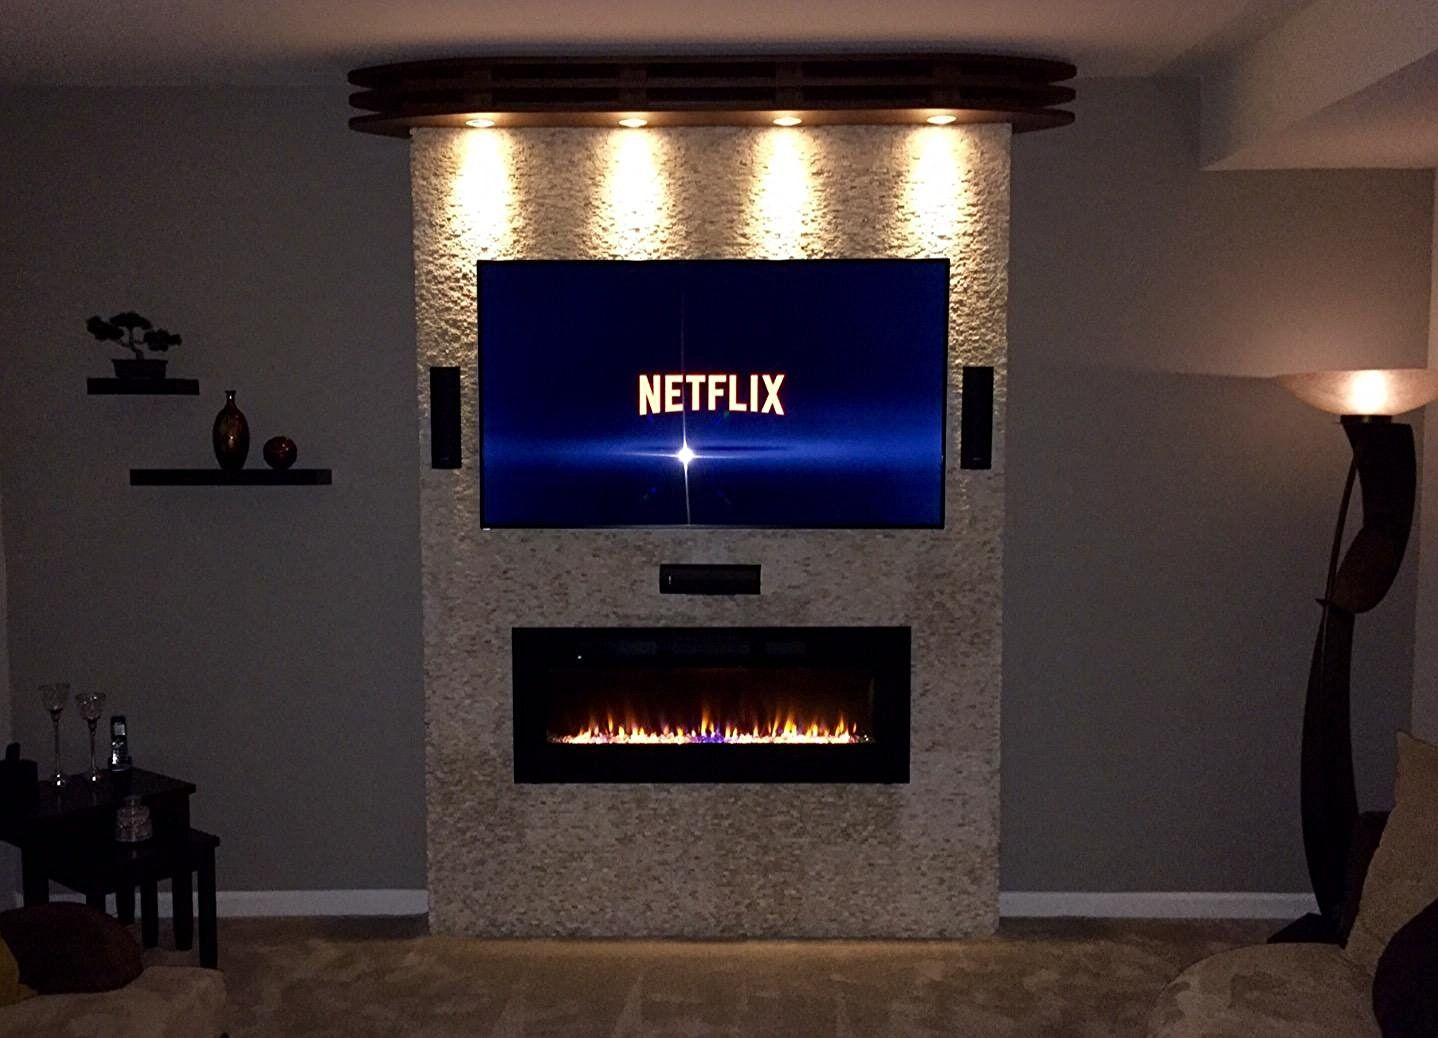 65 Inch Tv Over Fireplace Beautiful Amazon Napoleon Efl50h Linear Wall Mount Electric